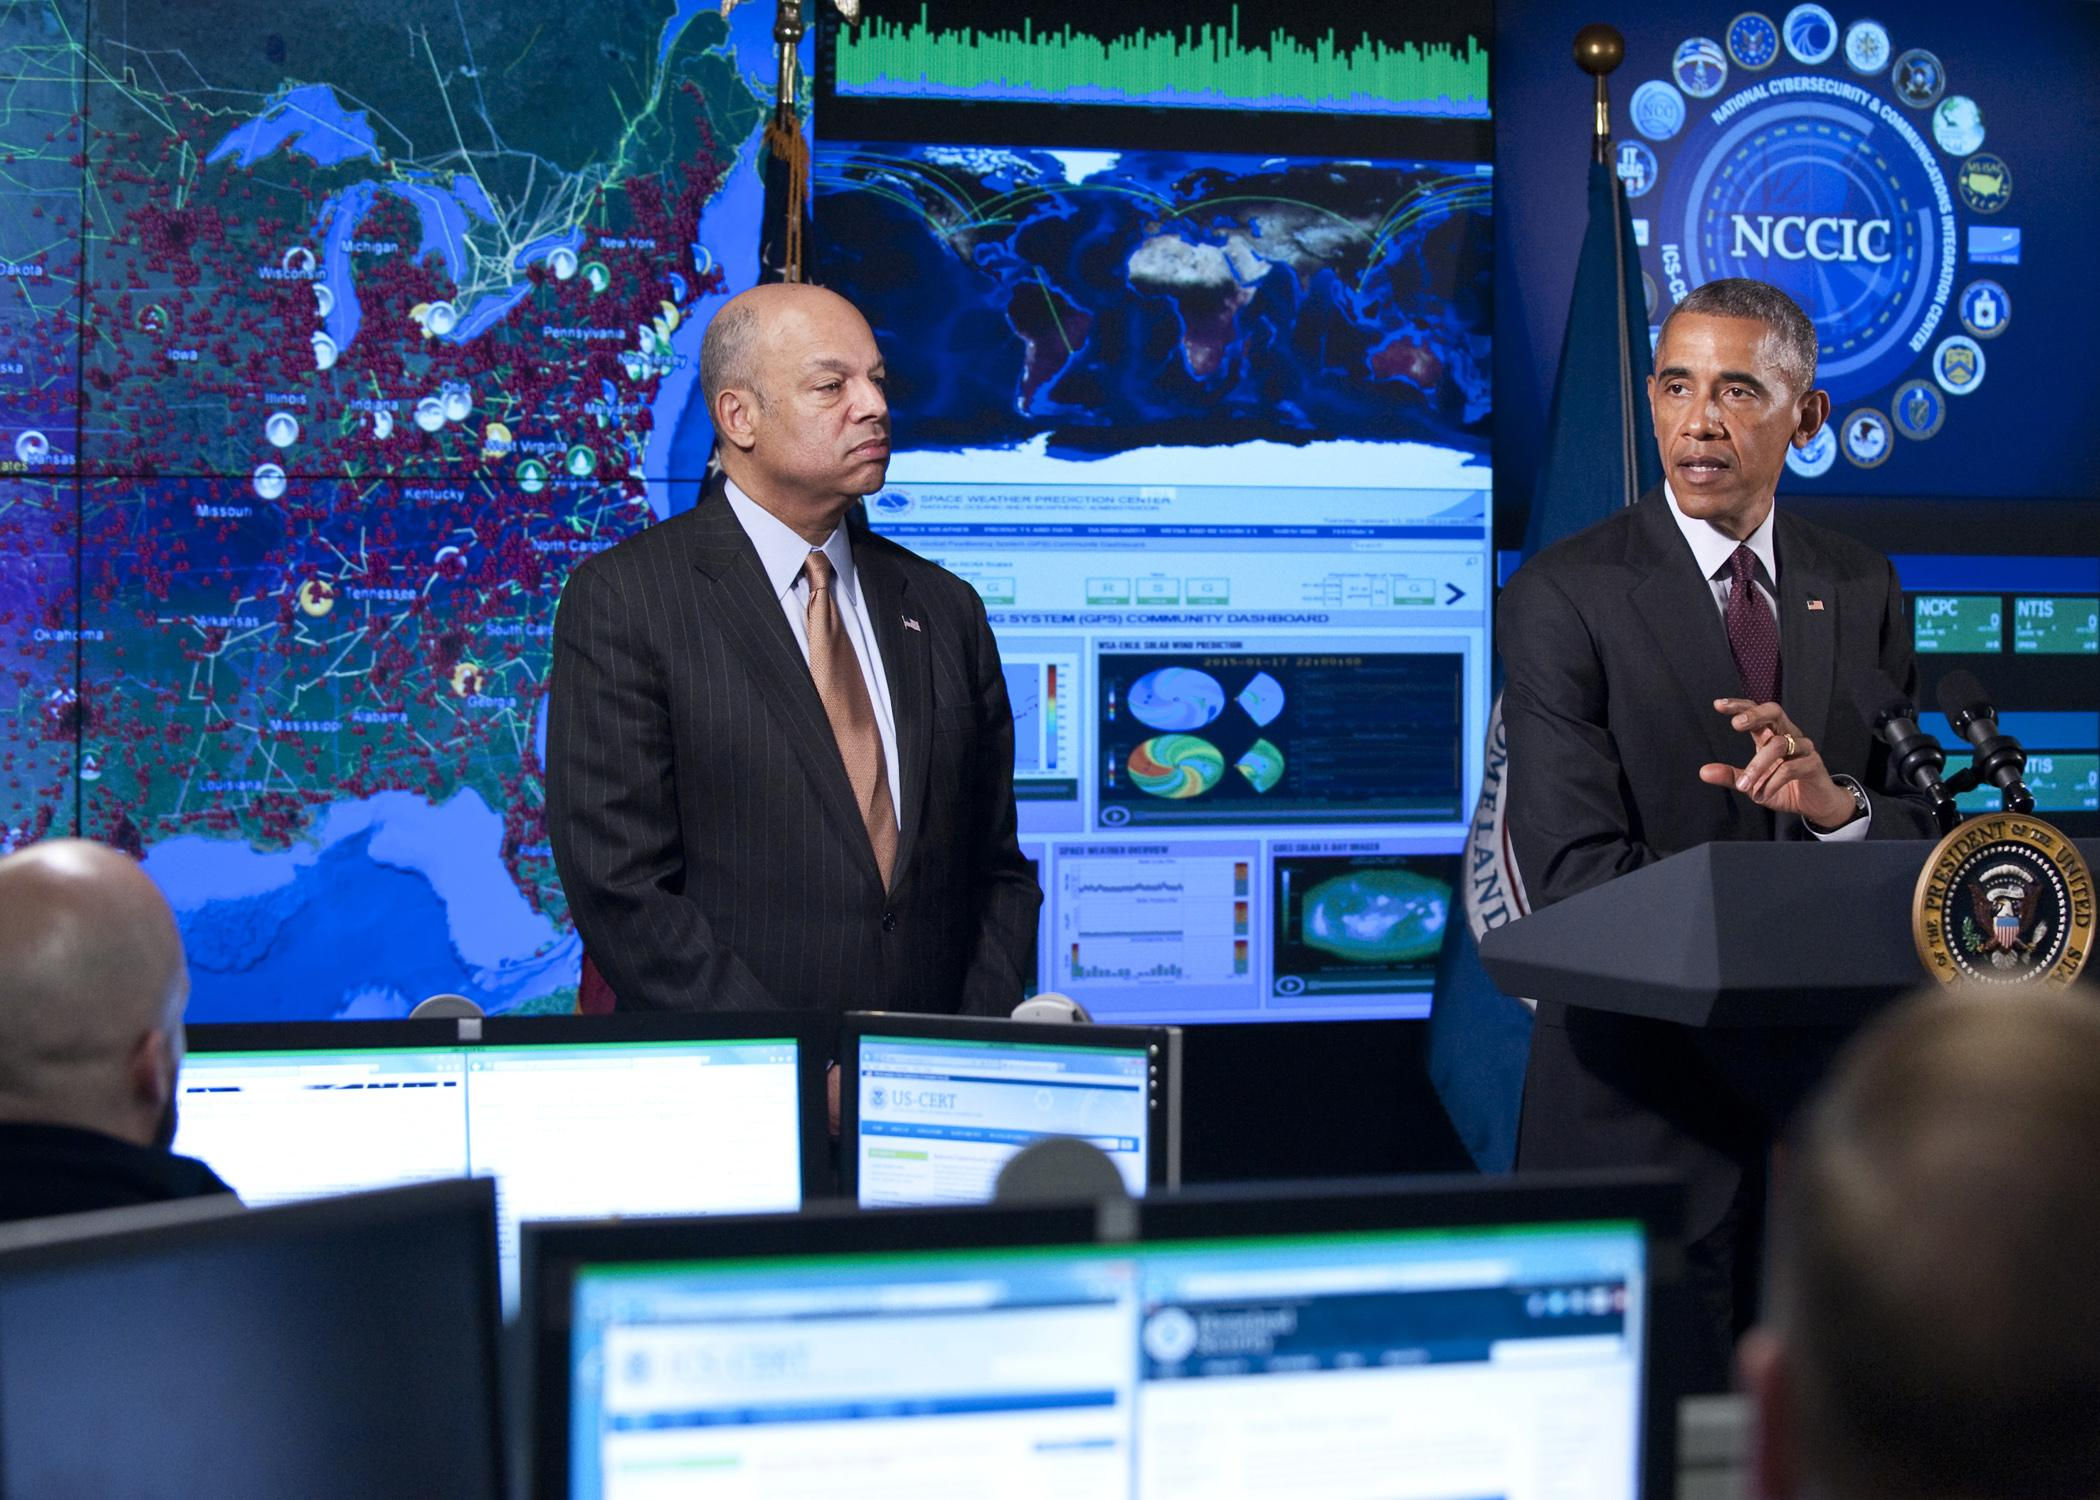 The Department of Homeland Security's National Cybersecurity and Communications Integration Center opened in 2009 to help DHS monitor cyber threats across government agencies. (DHS)